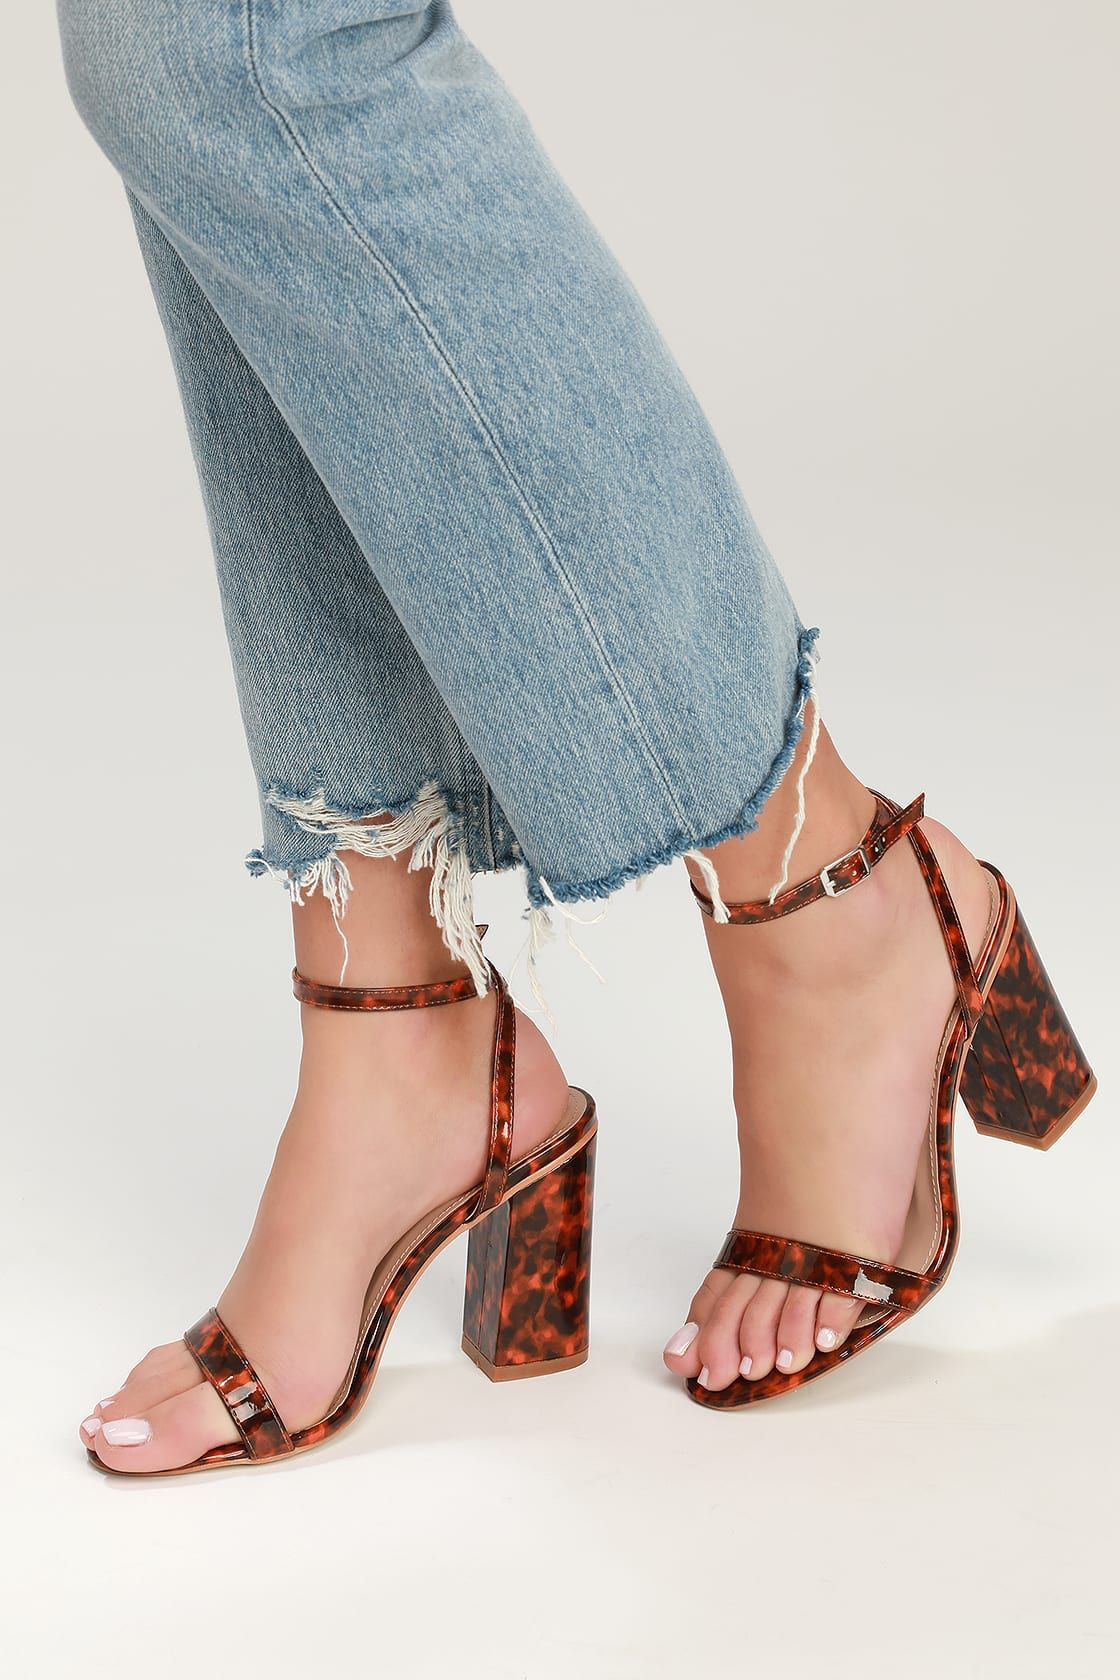 59550f824503 Doheny Tortoise Shell Patent Ankle Strap Heels in 2019 | S. | Ankle ...